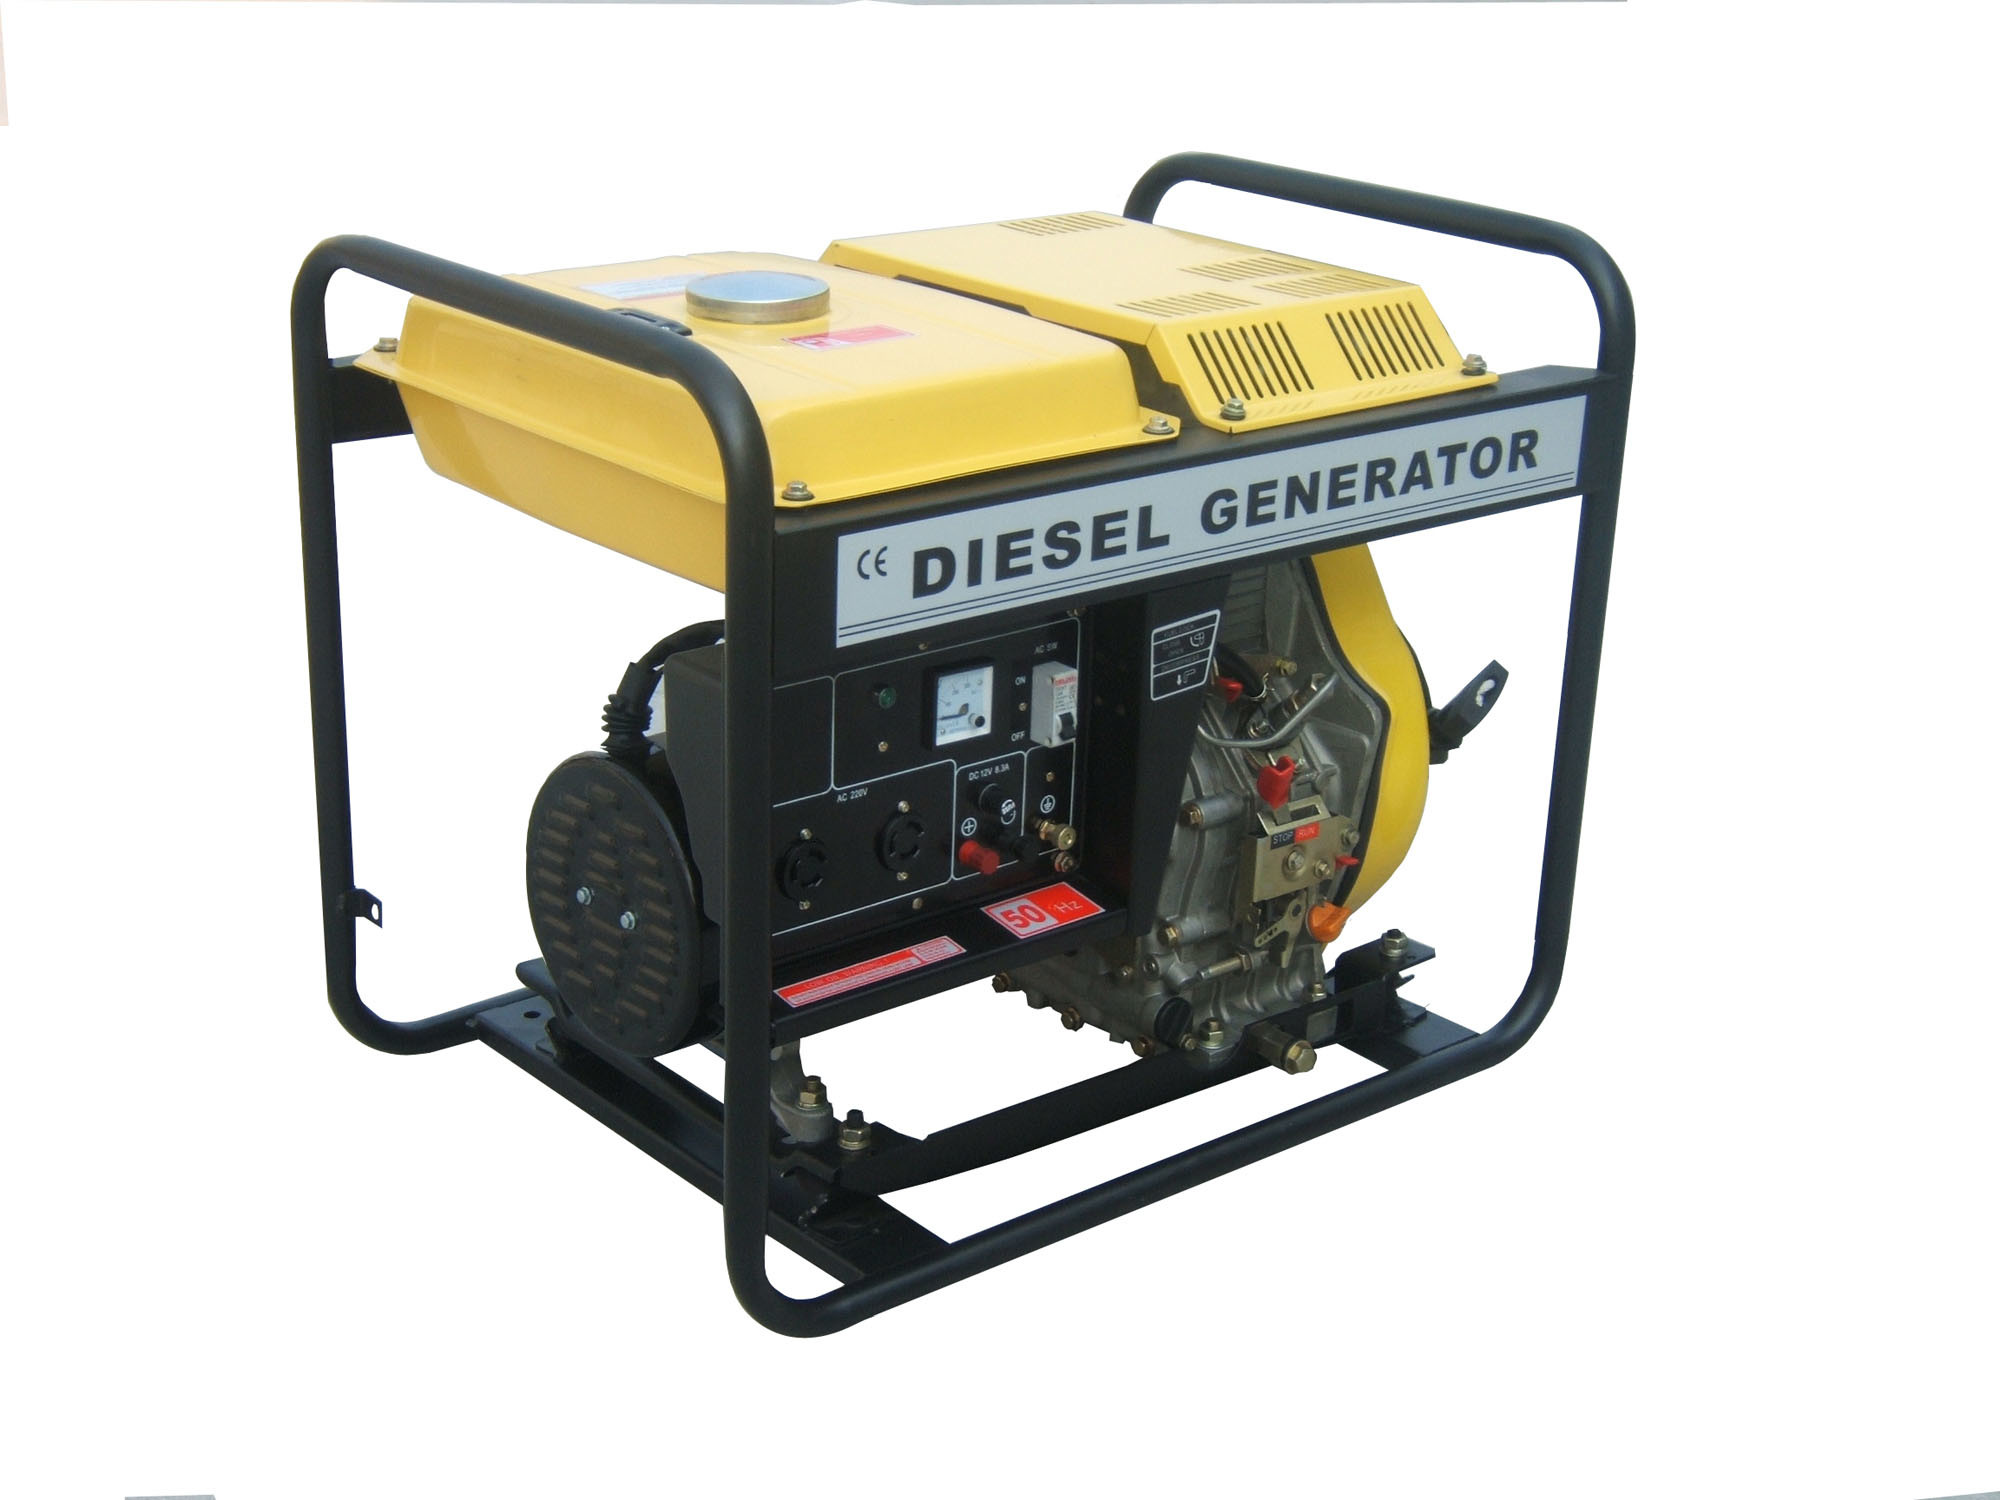 Diesel Generator Shanghai Techway Industrial Co Ltd page 1